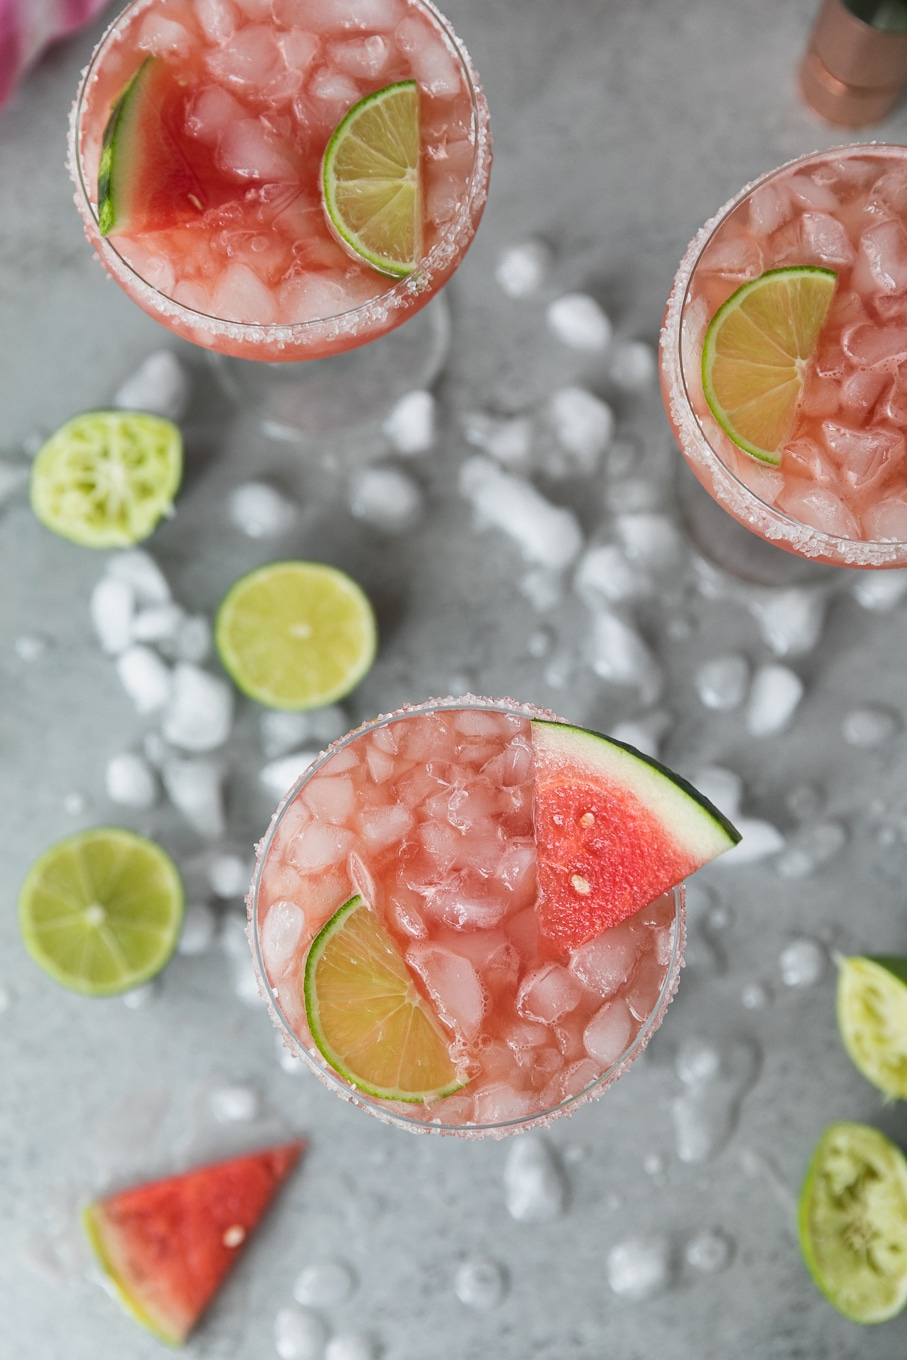 Overhead shot of 3 tall margarita glasses filled with crushed ice and pink watermelon grapefruit margaritas garnished with sliced watermelon and lime